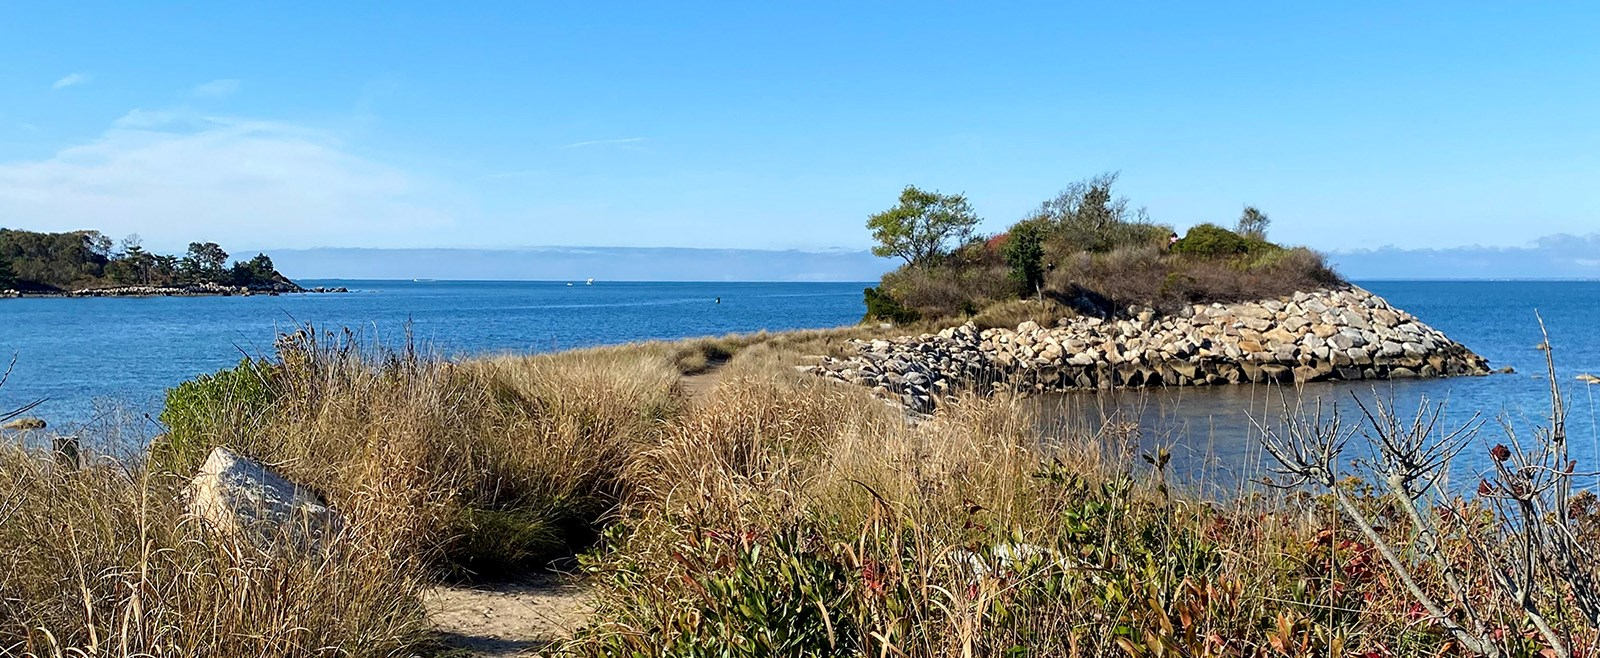 Cape Cod has some of the best hiking trails in Massachusetts! You'll find gorgeous scenery, wildlife, and beach trails galore!